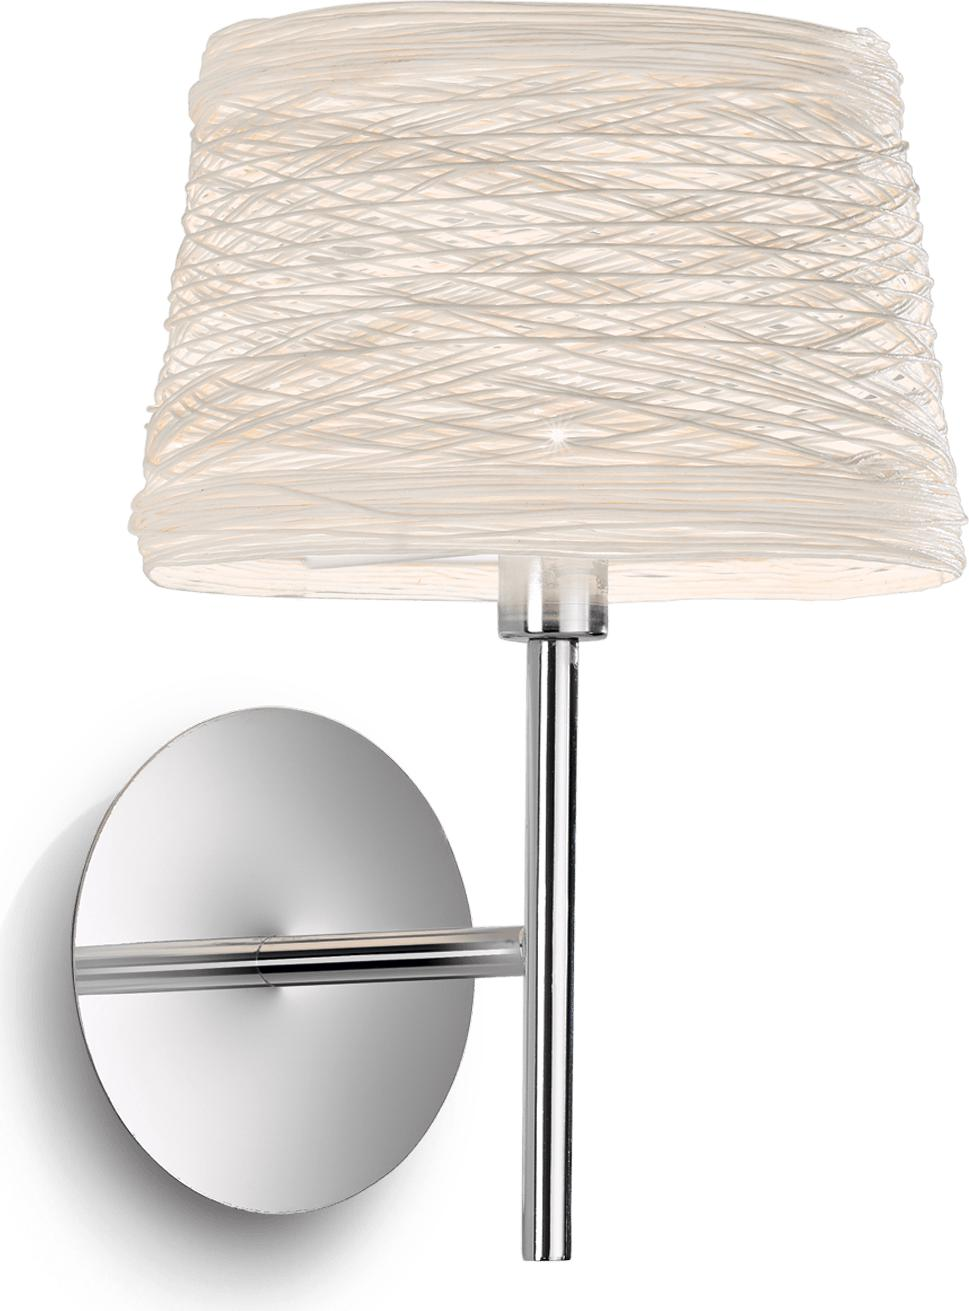 Ideal lux LED Basket Wand Lampe 4,5W 82493